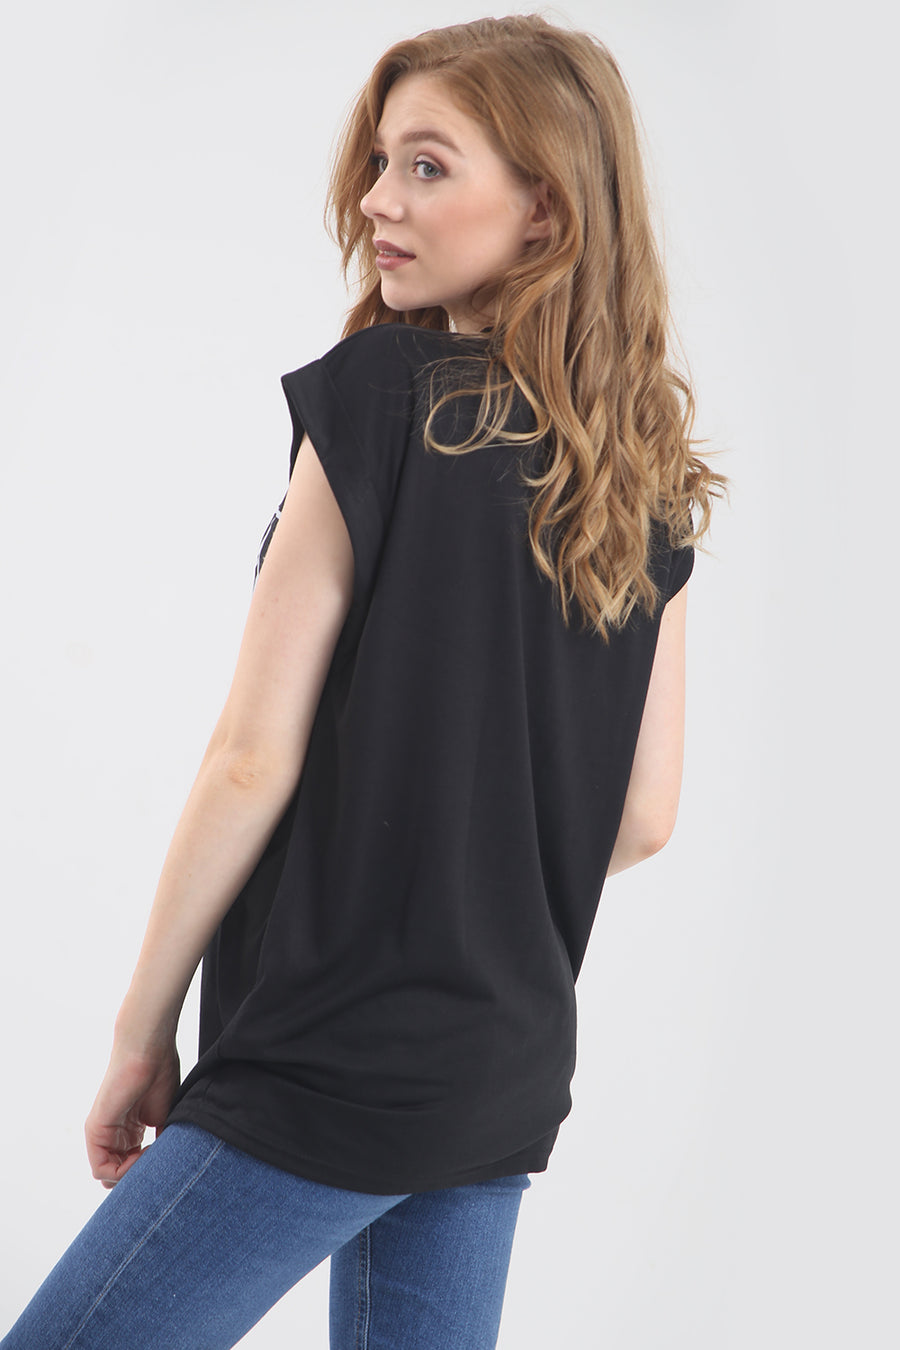 'Dramatic' Relaxed Fit Black Slogan T-Shirt - bejealous-com